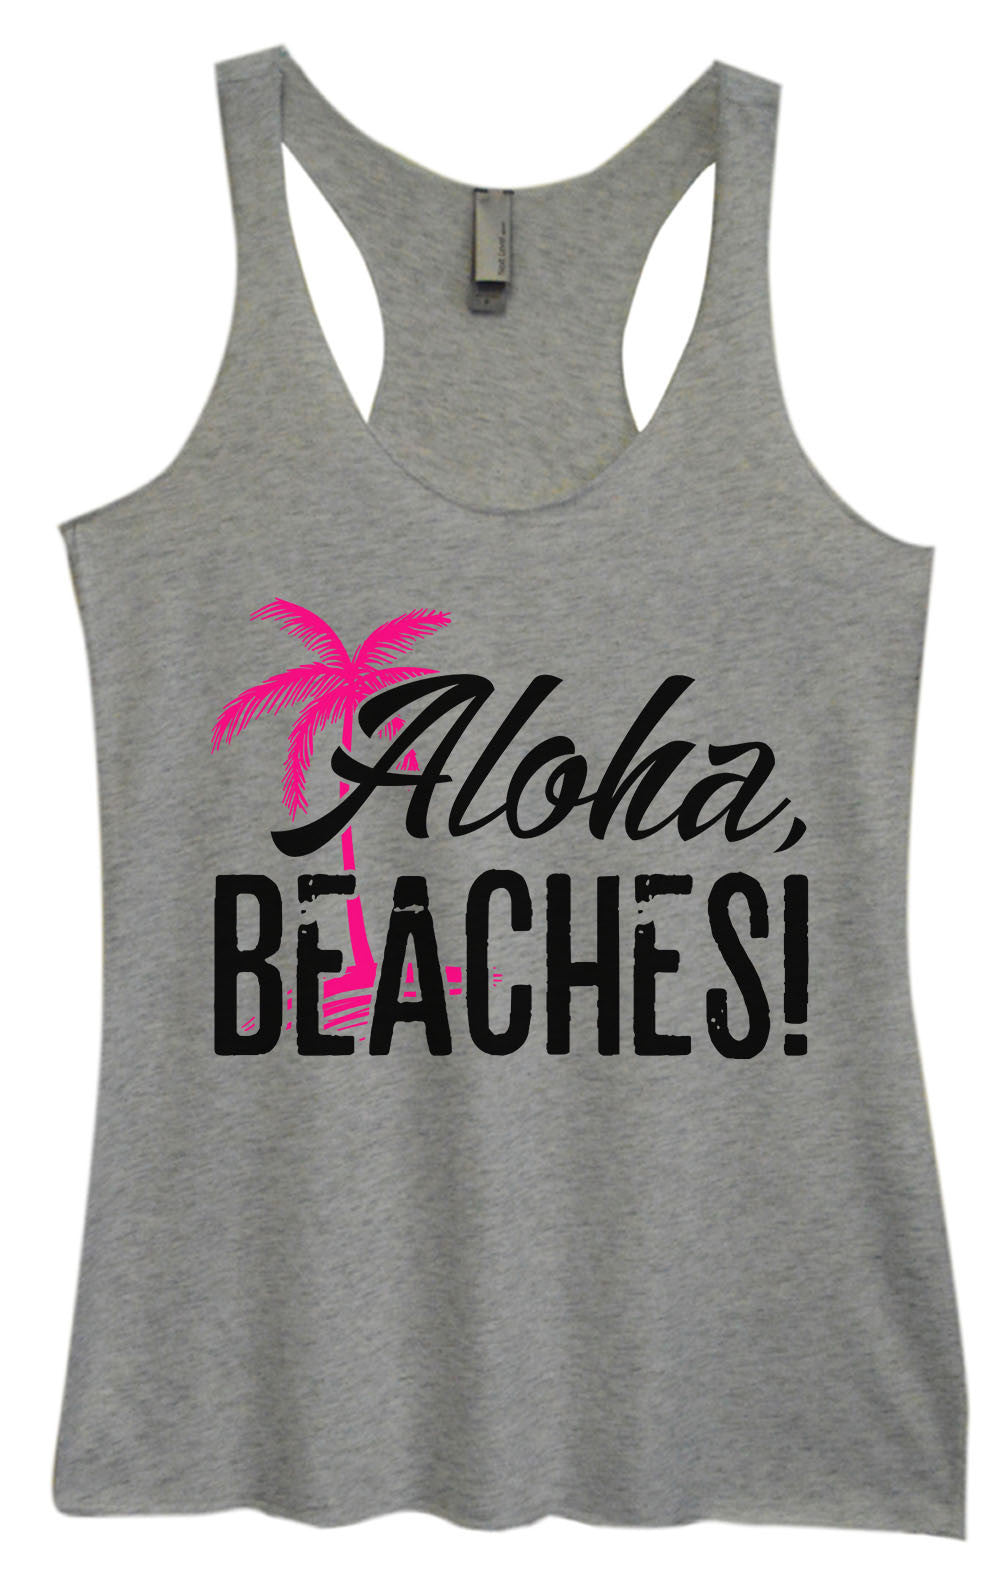 Womens Fashion Triblend Tank Top - Aloha, Beaches! - Tri-1387 - Funny Shirts Tank Tops Burnouts and Triblends  - 2